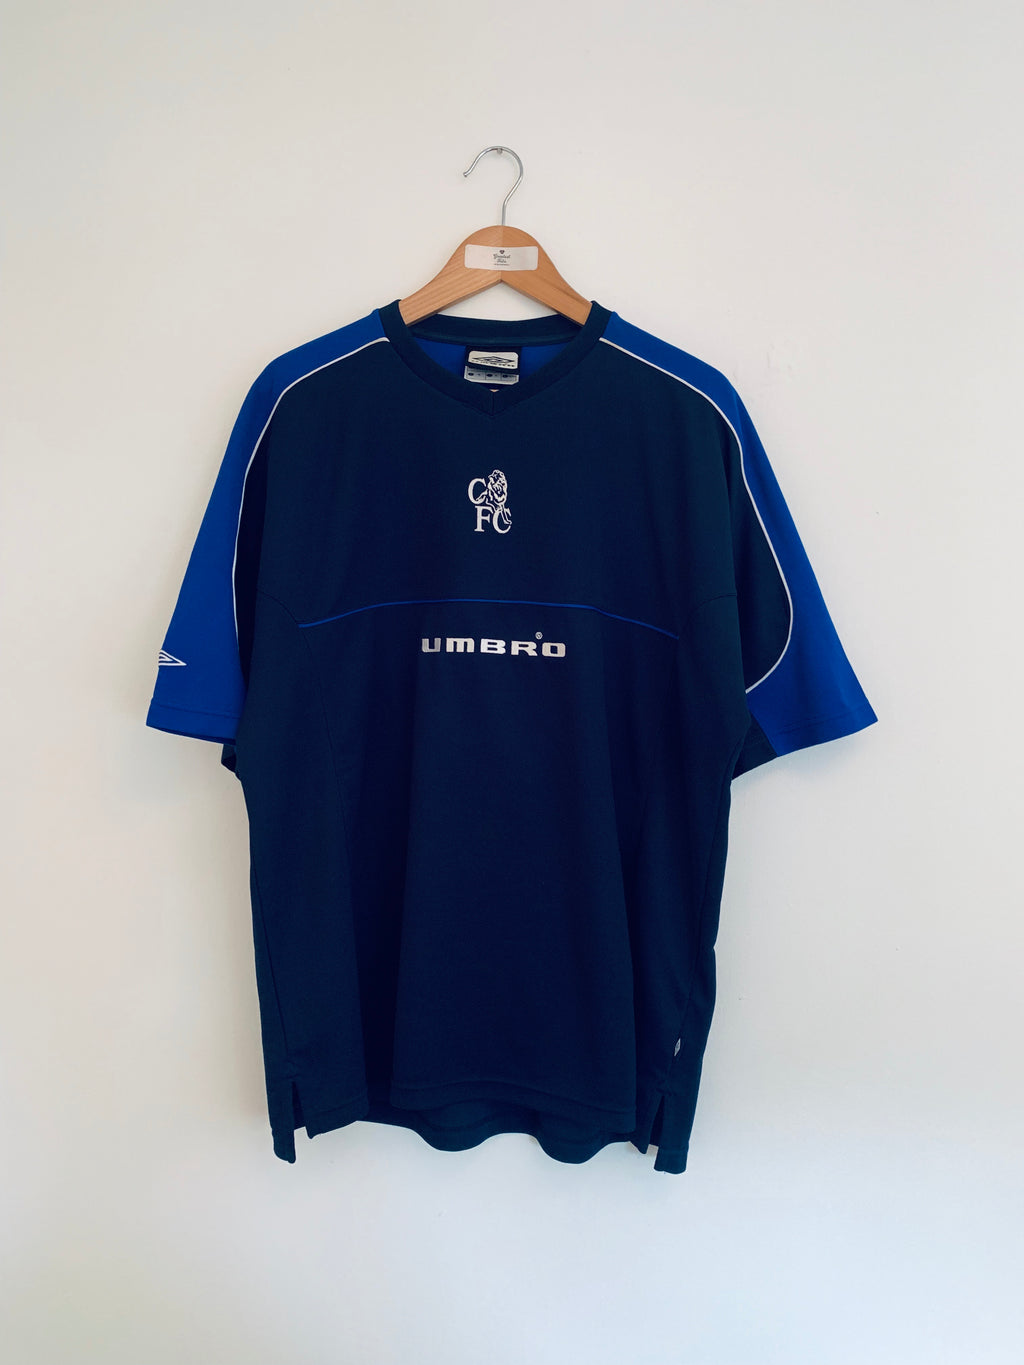 2001/02 Chelsea Training Shirt (XL) 8.5/10